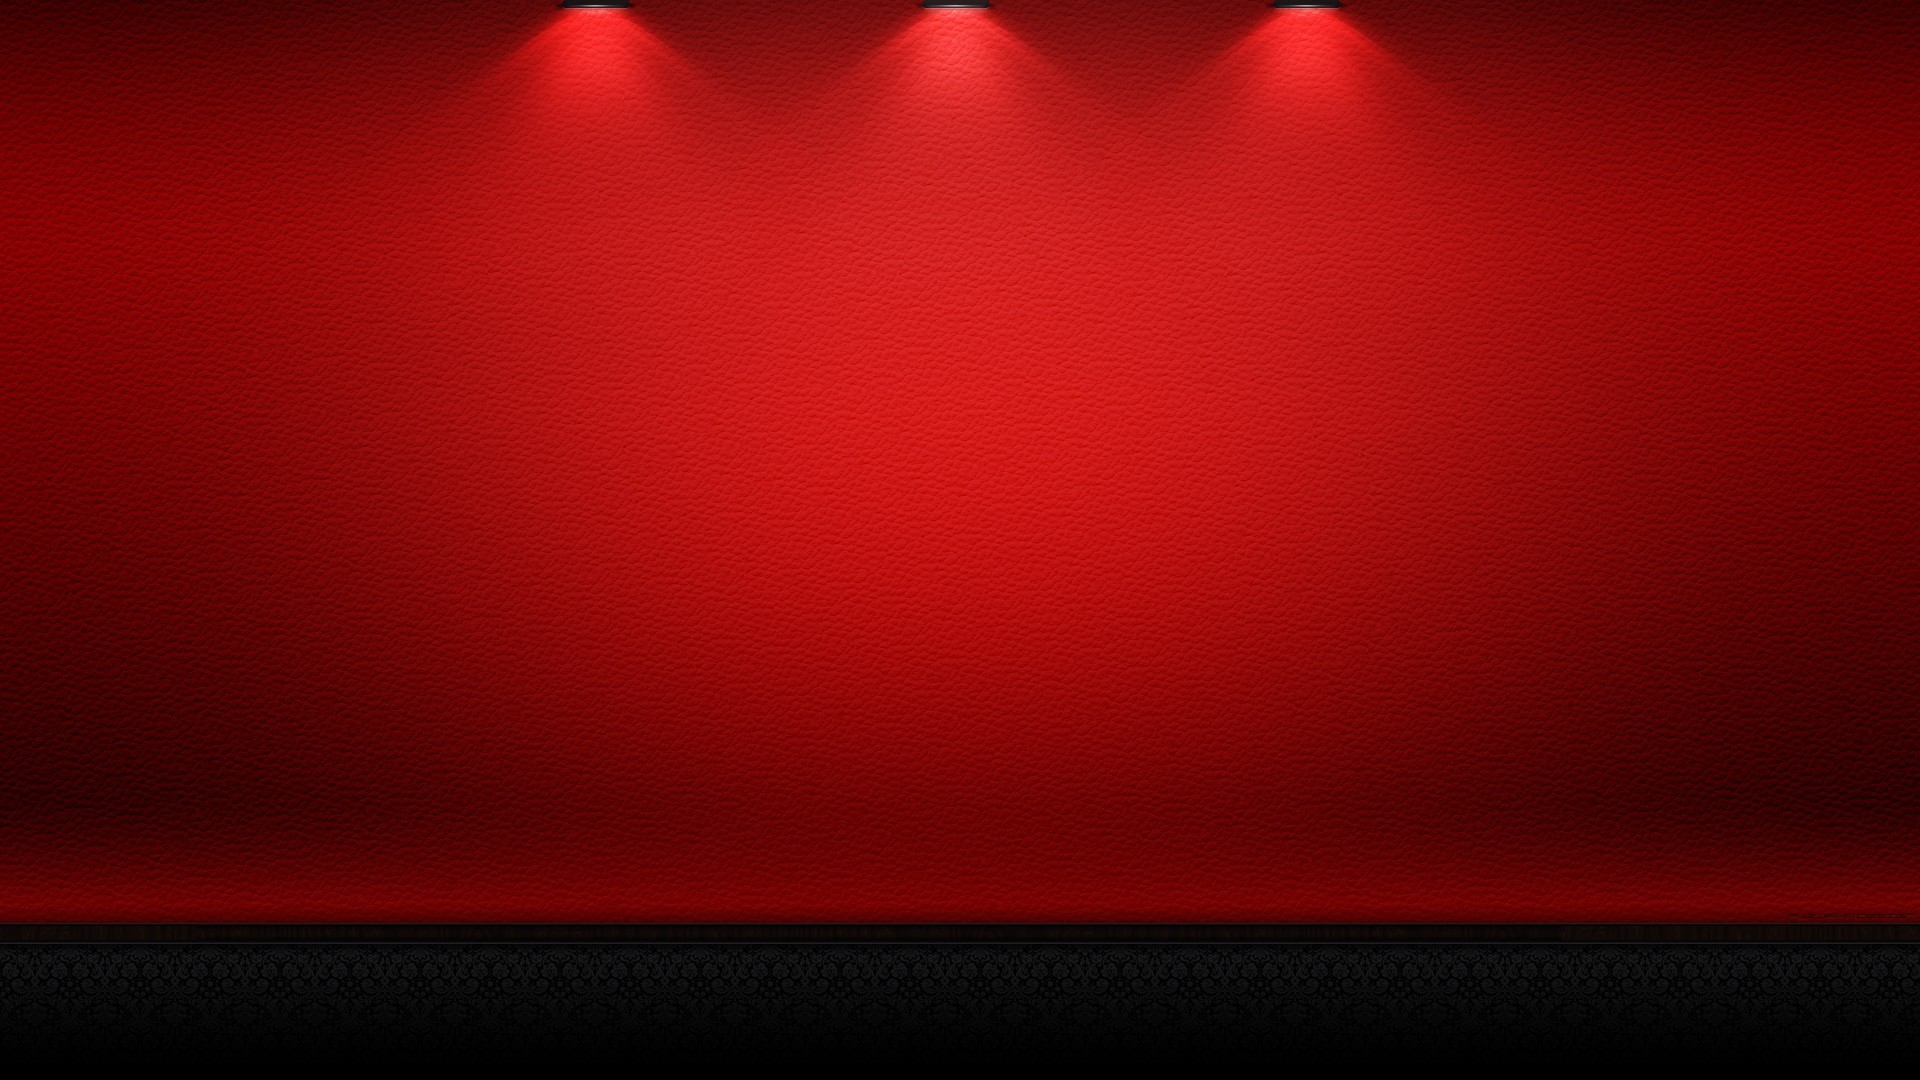 red background wallpaper 183��